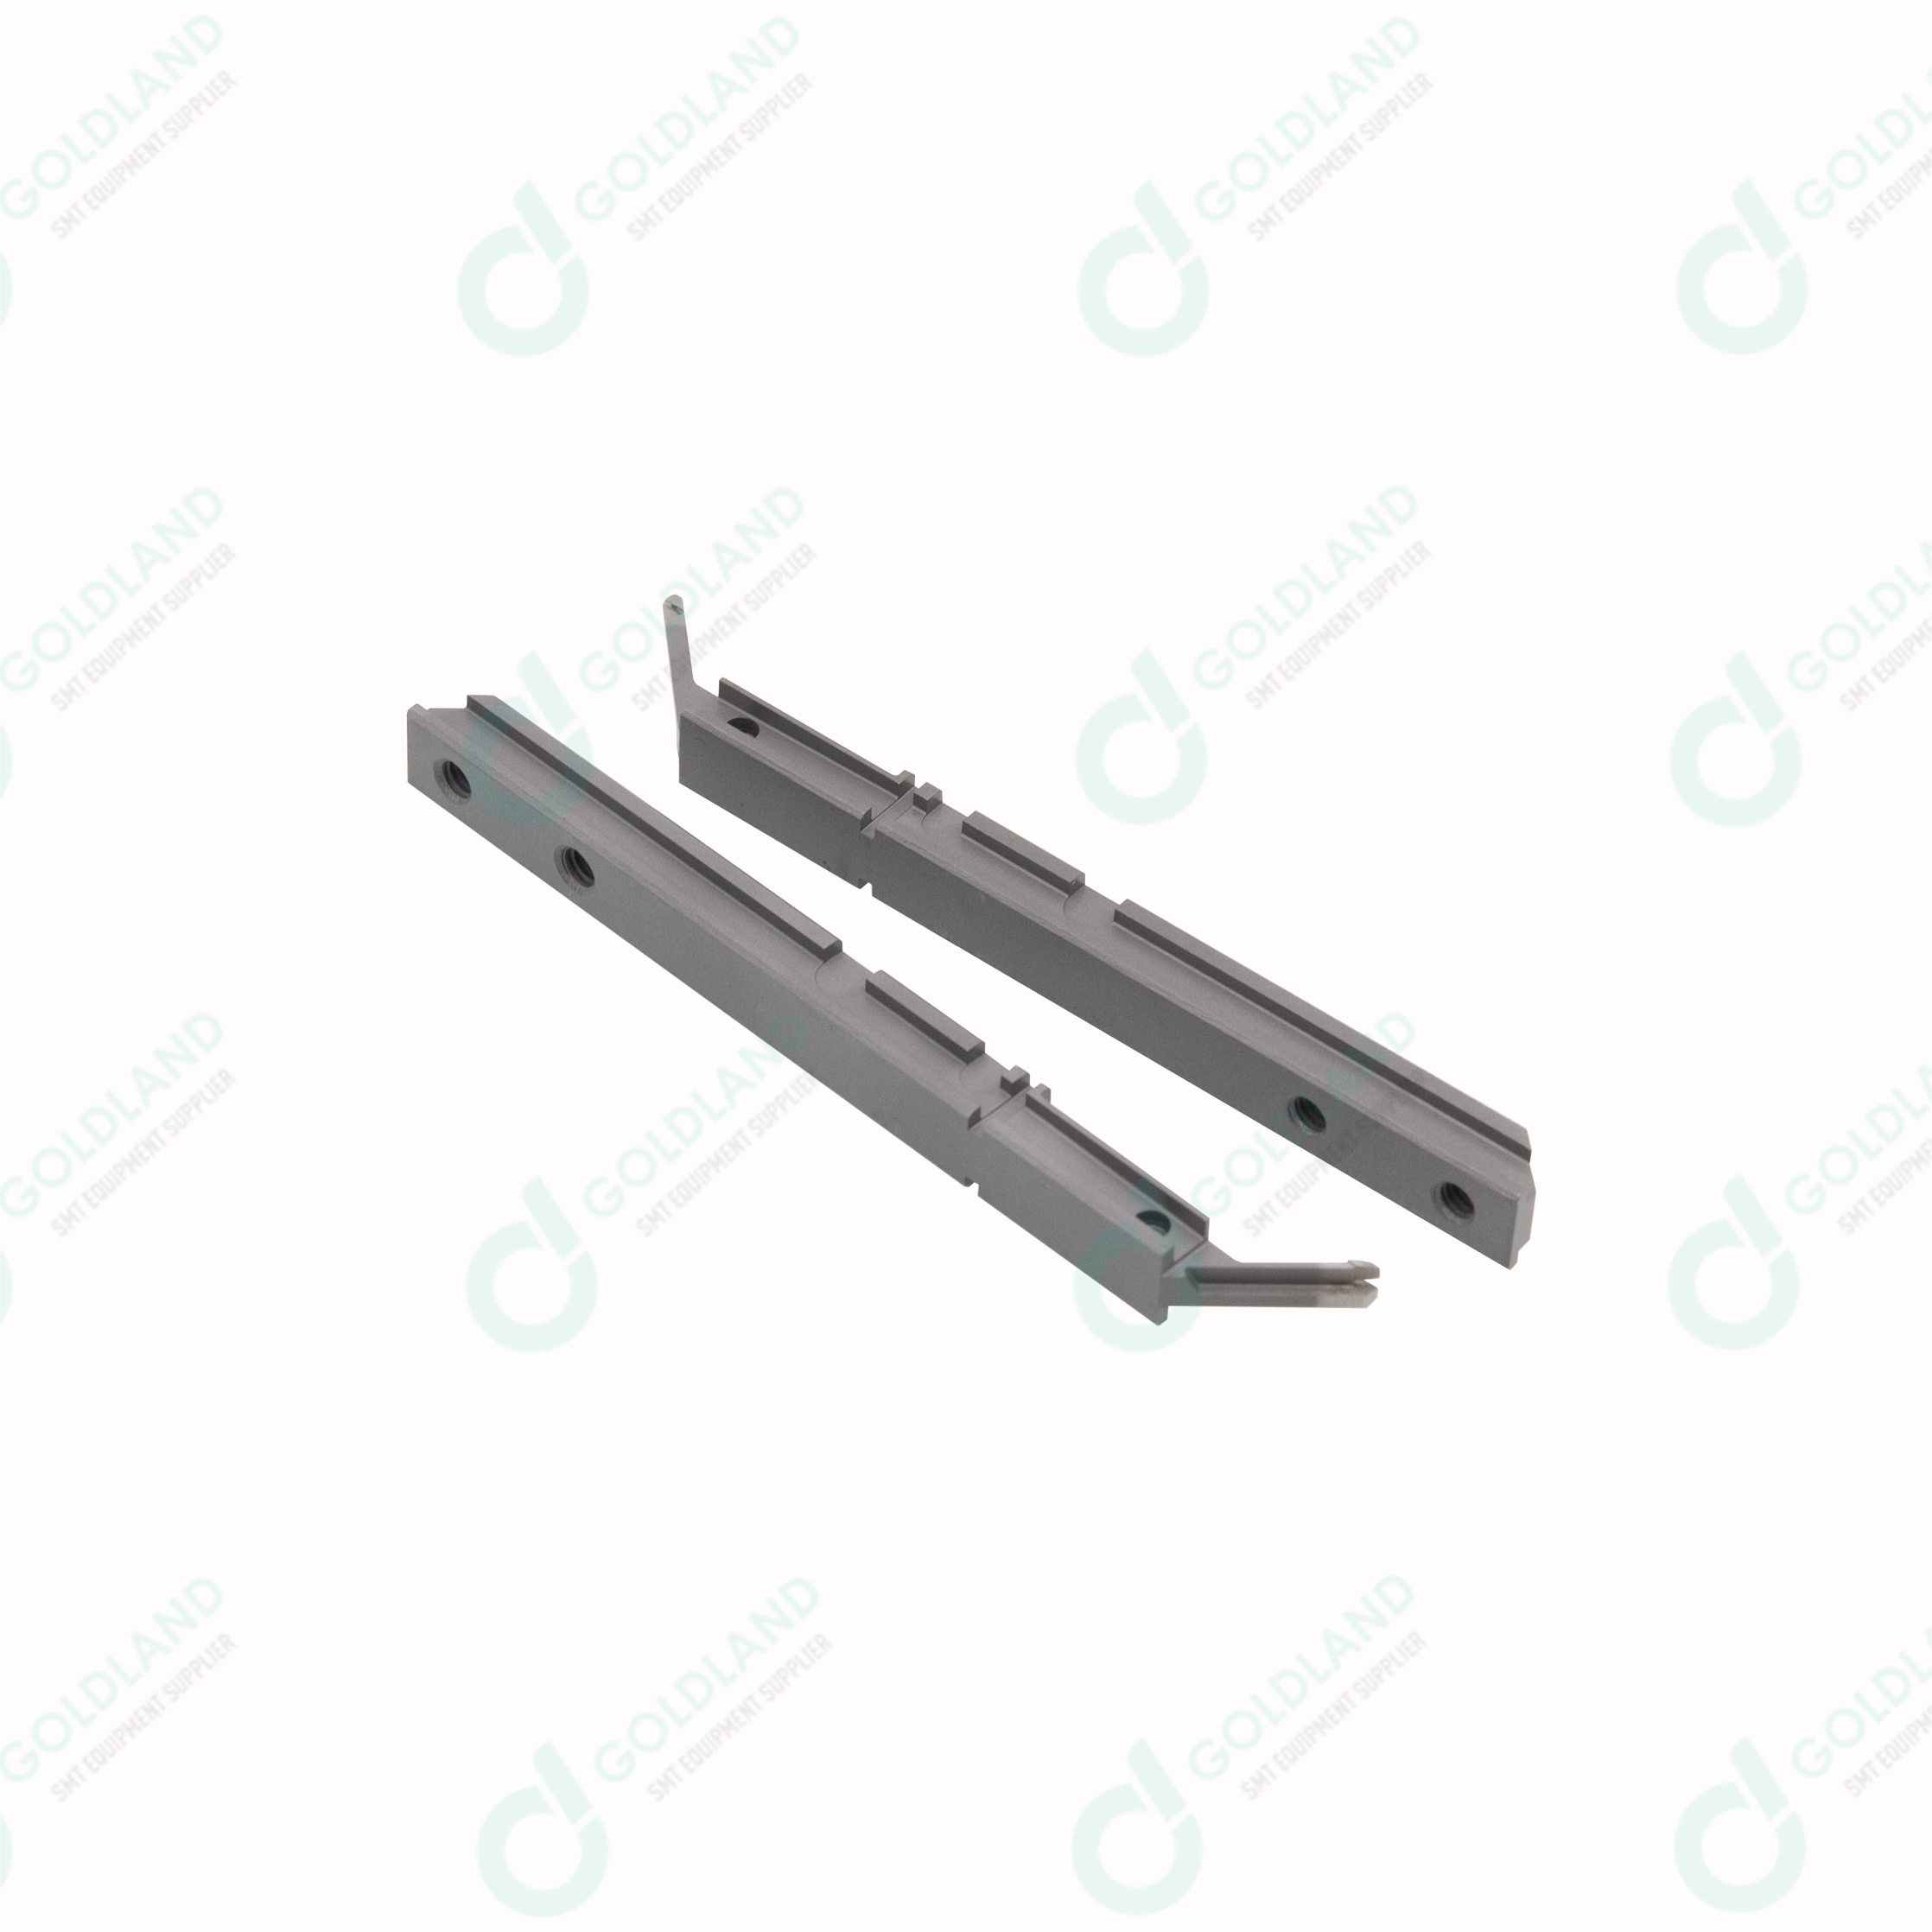 44629606 Universal AI spare parts Universal Guide jaw